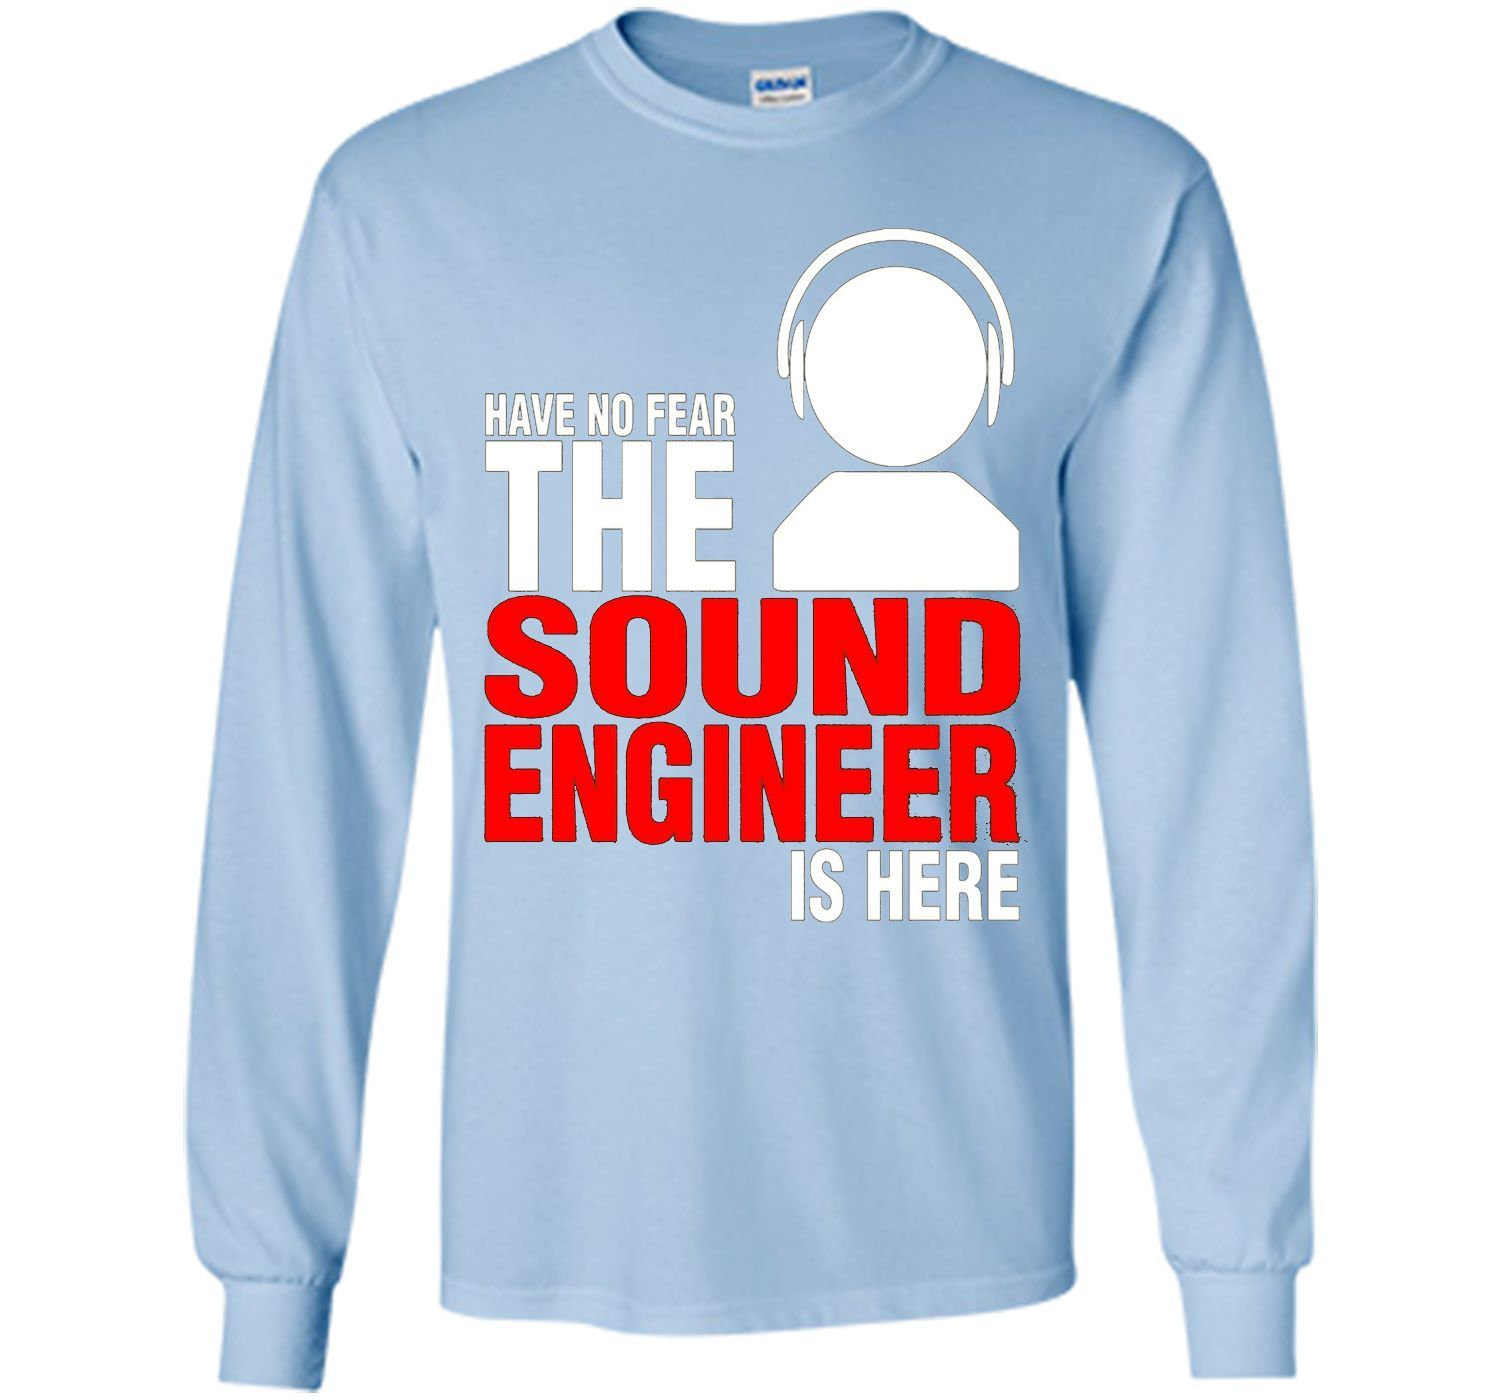 Have No Fear The Sound Engineer Is Here T-Shirt